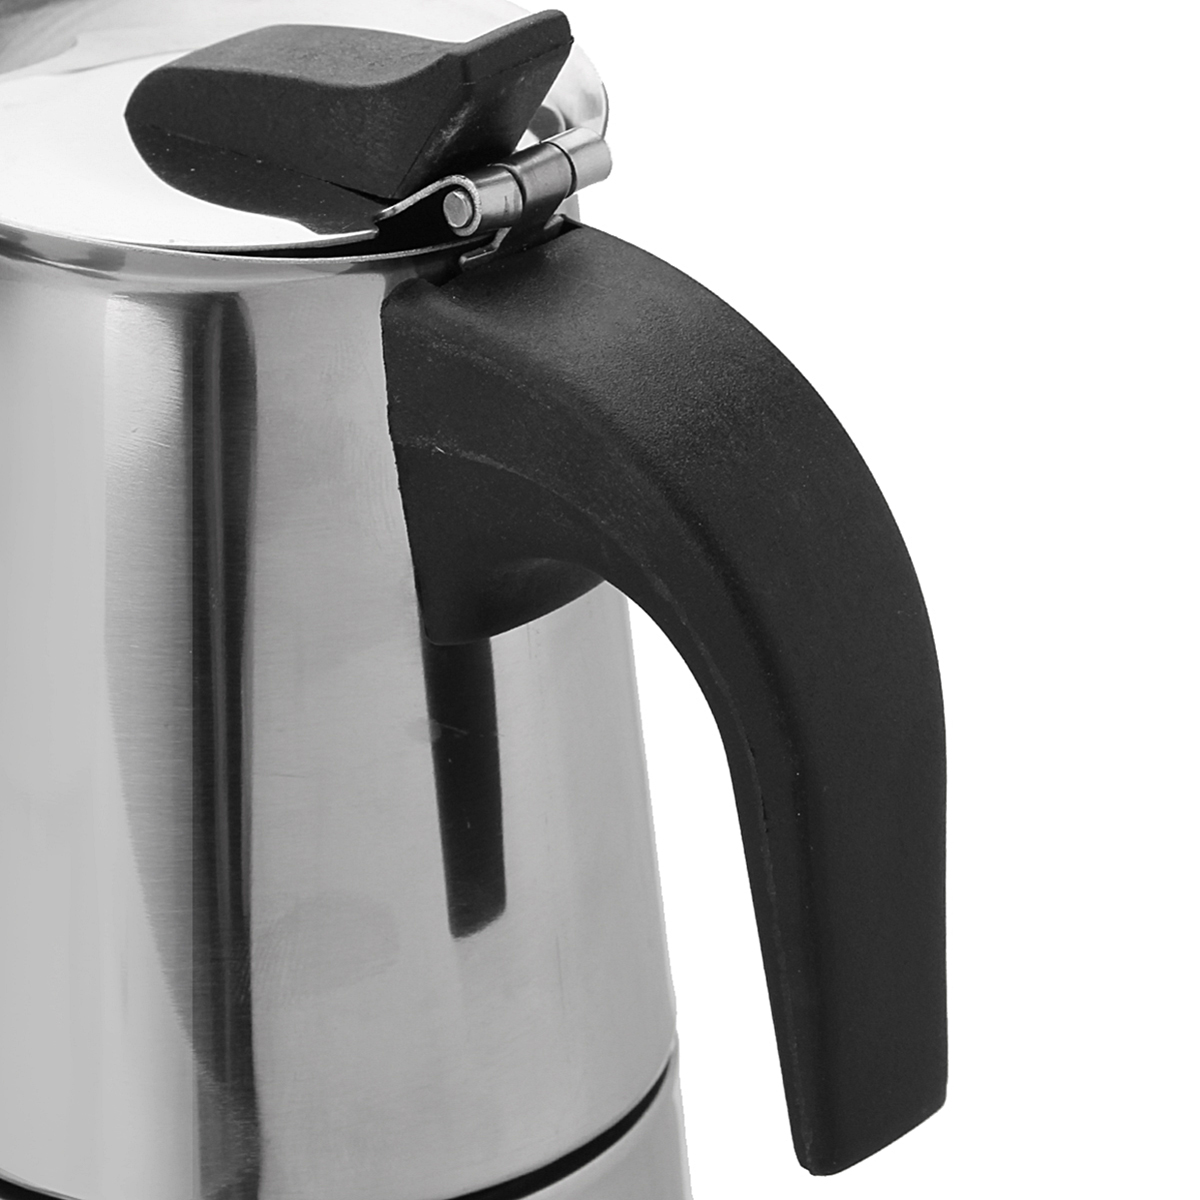 100ML Percolator Stove Top Espresso Moka Coffee Maker Pot Stainless Steel